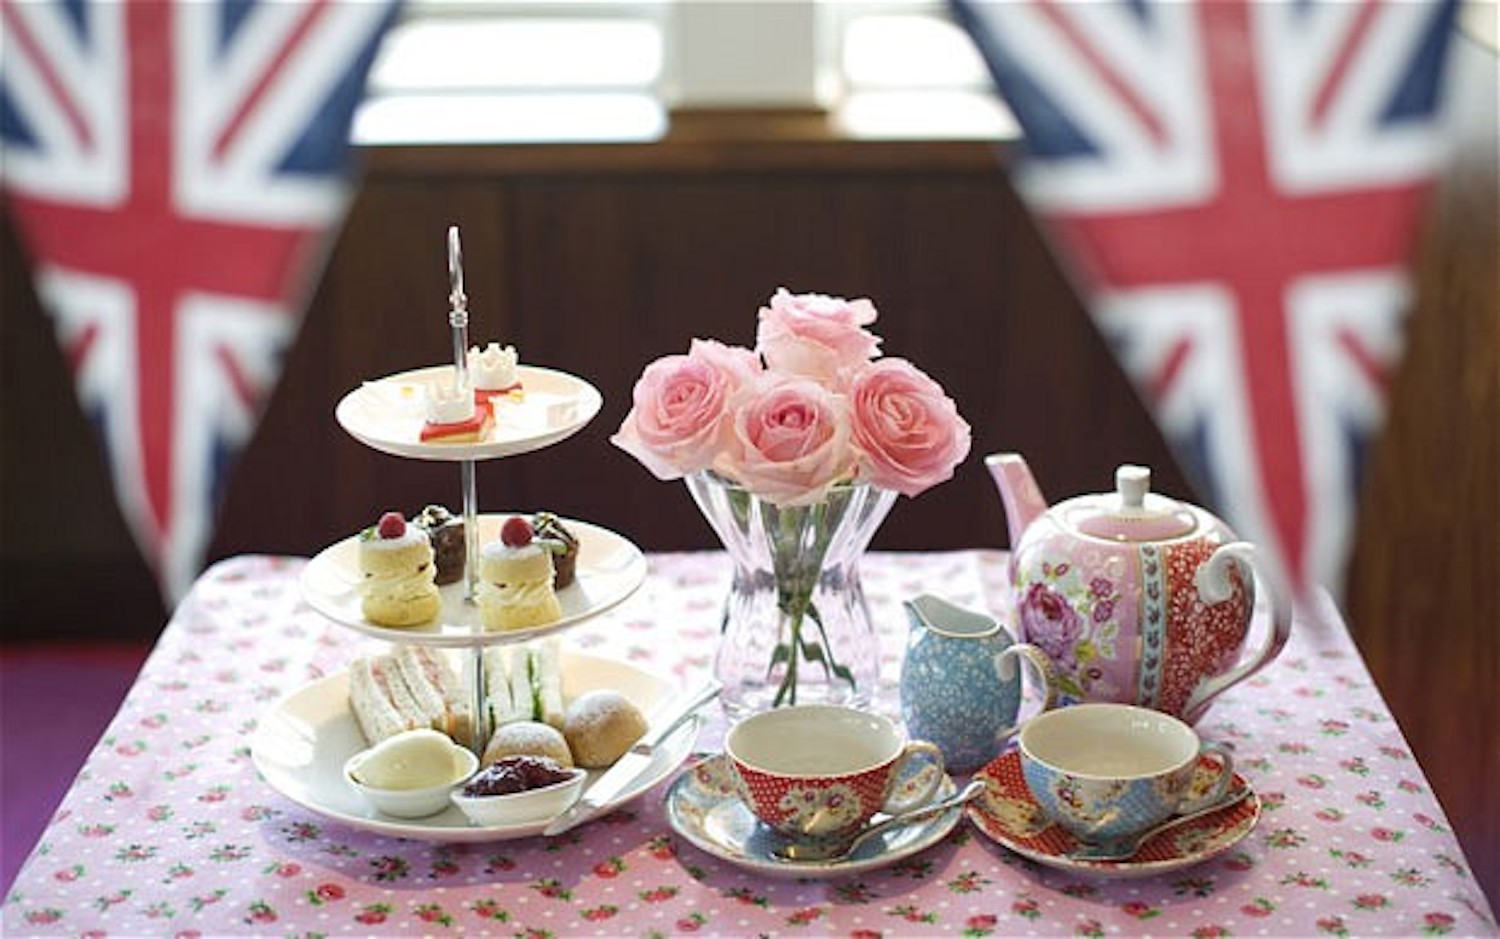 the evolution of british tea traditions in the 18 19th centuries essay Recommended reading about 18th century fashion british artists and designers were increasingly influenced by other cultures spanning four centuries.